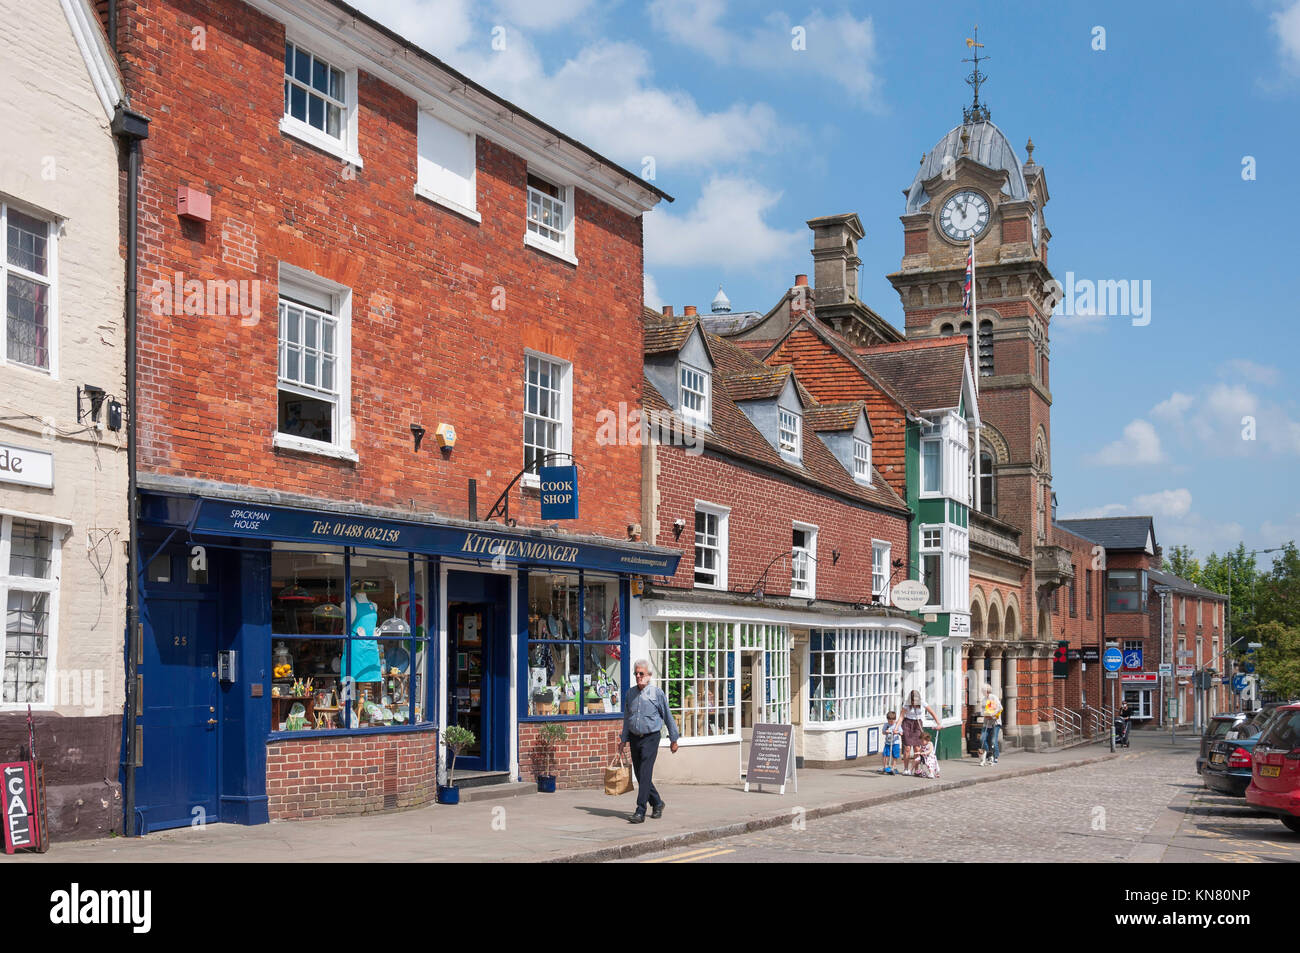 Hungerford Town Hall, High Street, Hungerford, Berkshire, England, United Kingdom Stock Photo